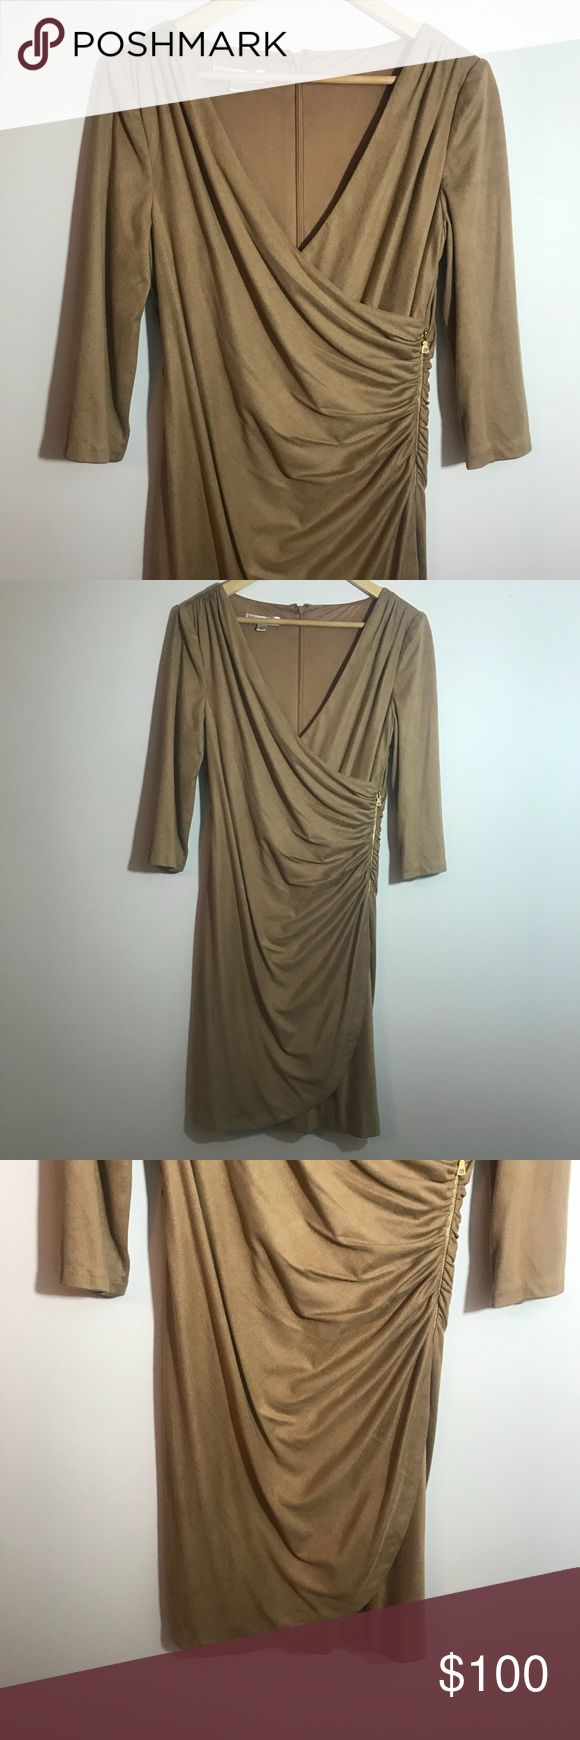 """Kay Unger Suede Wrap Dress Size 6 Camel Cocktail Excellent condition. No flaws. Gorgeous Camel Colored  wrap dress with a zipper (for looks) on the side. Perfect for upcoming holiday parties! Size 6. Measurements taken laid flat: bust approximately 17"""", Waist approximately 15"""", length approximately 39"""" Kay Unger Dresses Long Sleeve"""